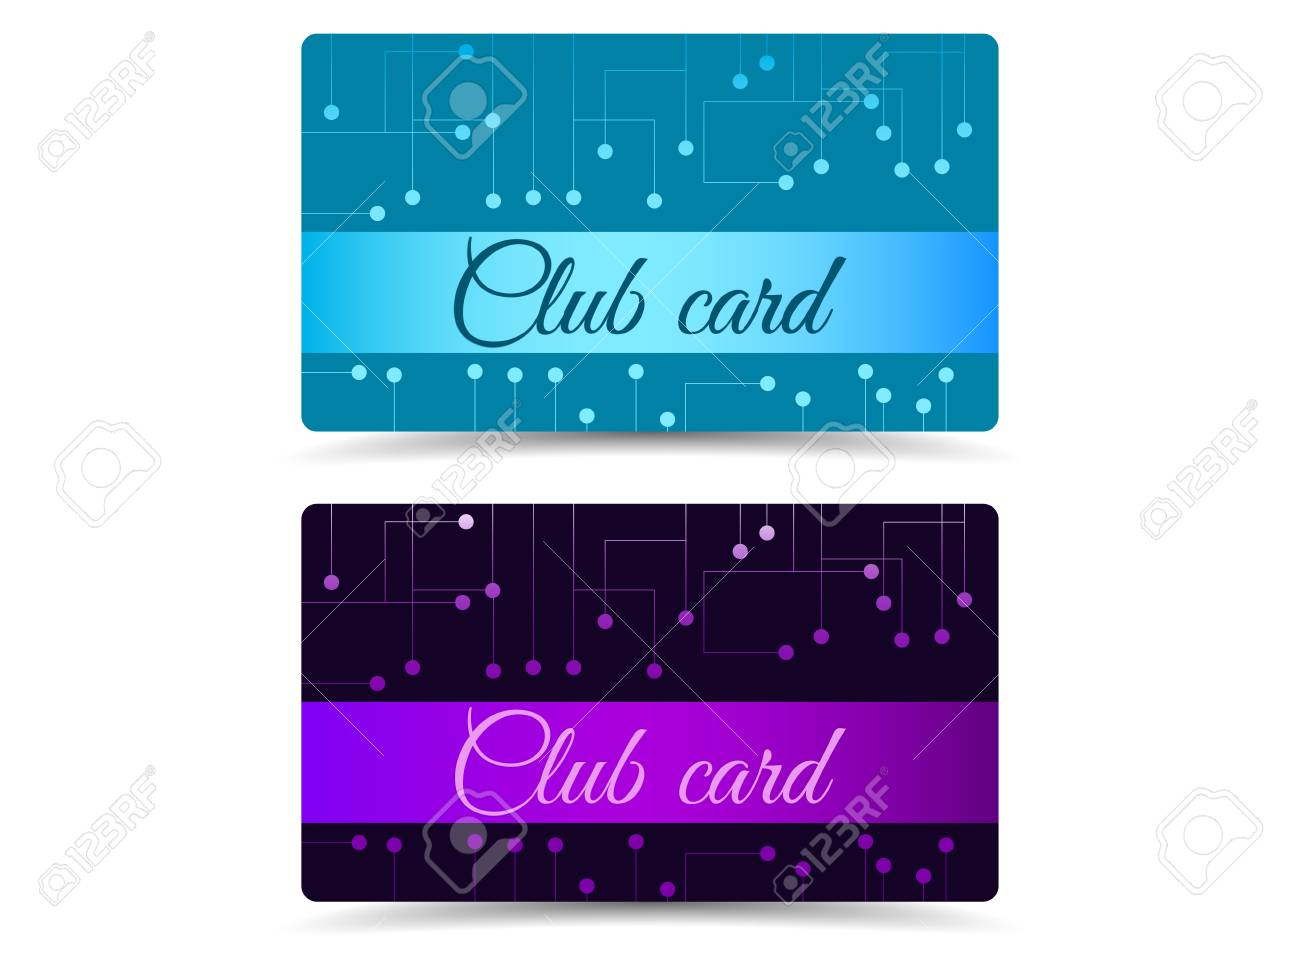 hight resolution of club card club plastic card set club cards gift cards stock vector